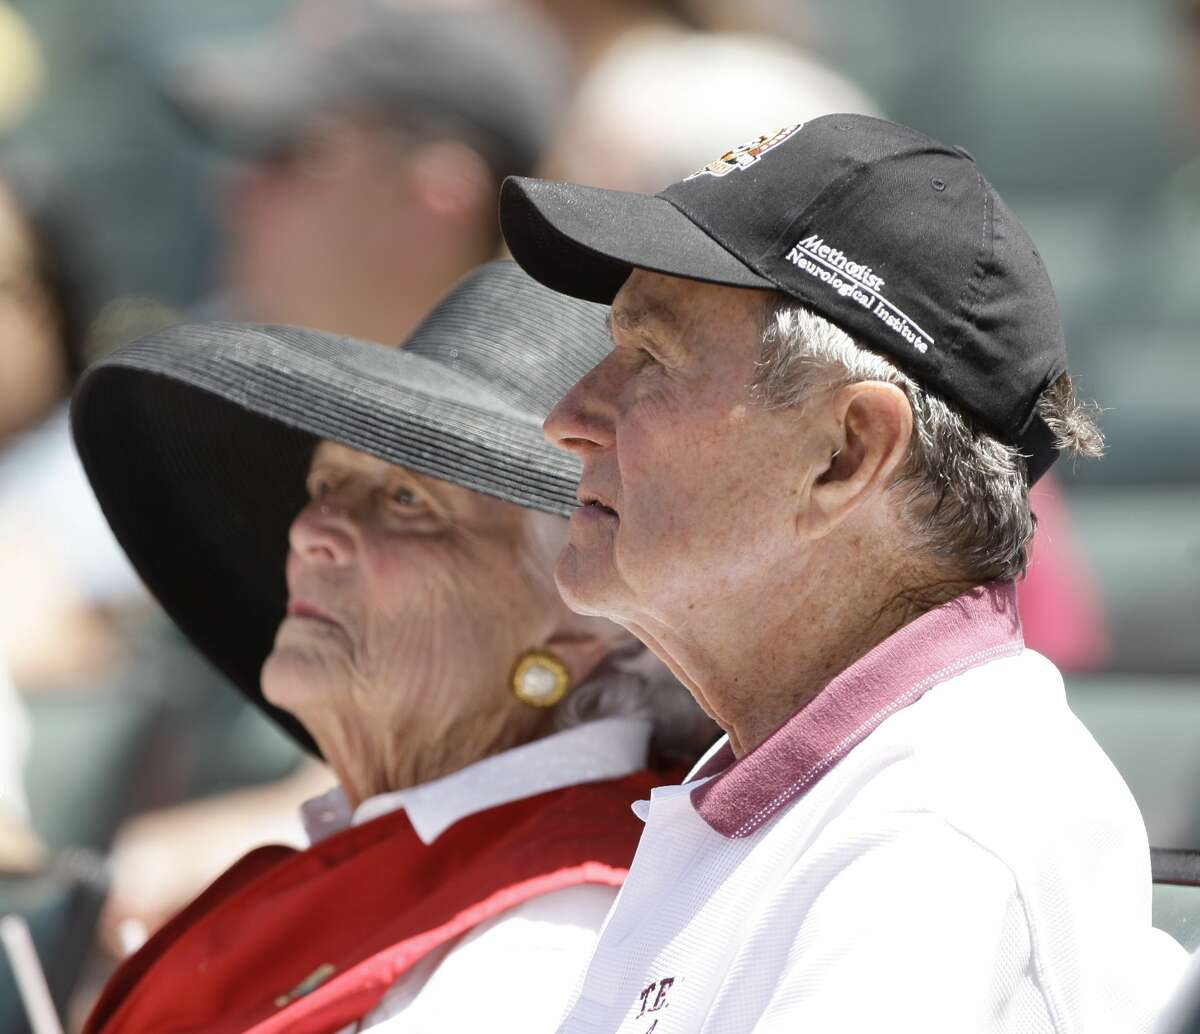 HOUSTON - APRIL 25: Former President George H.W. Bush and Barbara Bush attend a baseball game between the Pittsburgh Pirates and the Houston Astros at Minute Maid Park on April 25, 2010 in Houston, Texas. (Photo by Bob Levey/Getty Images)